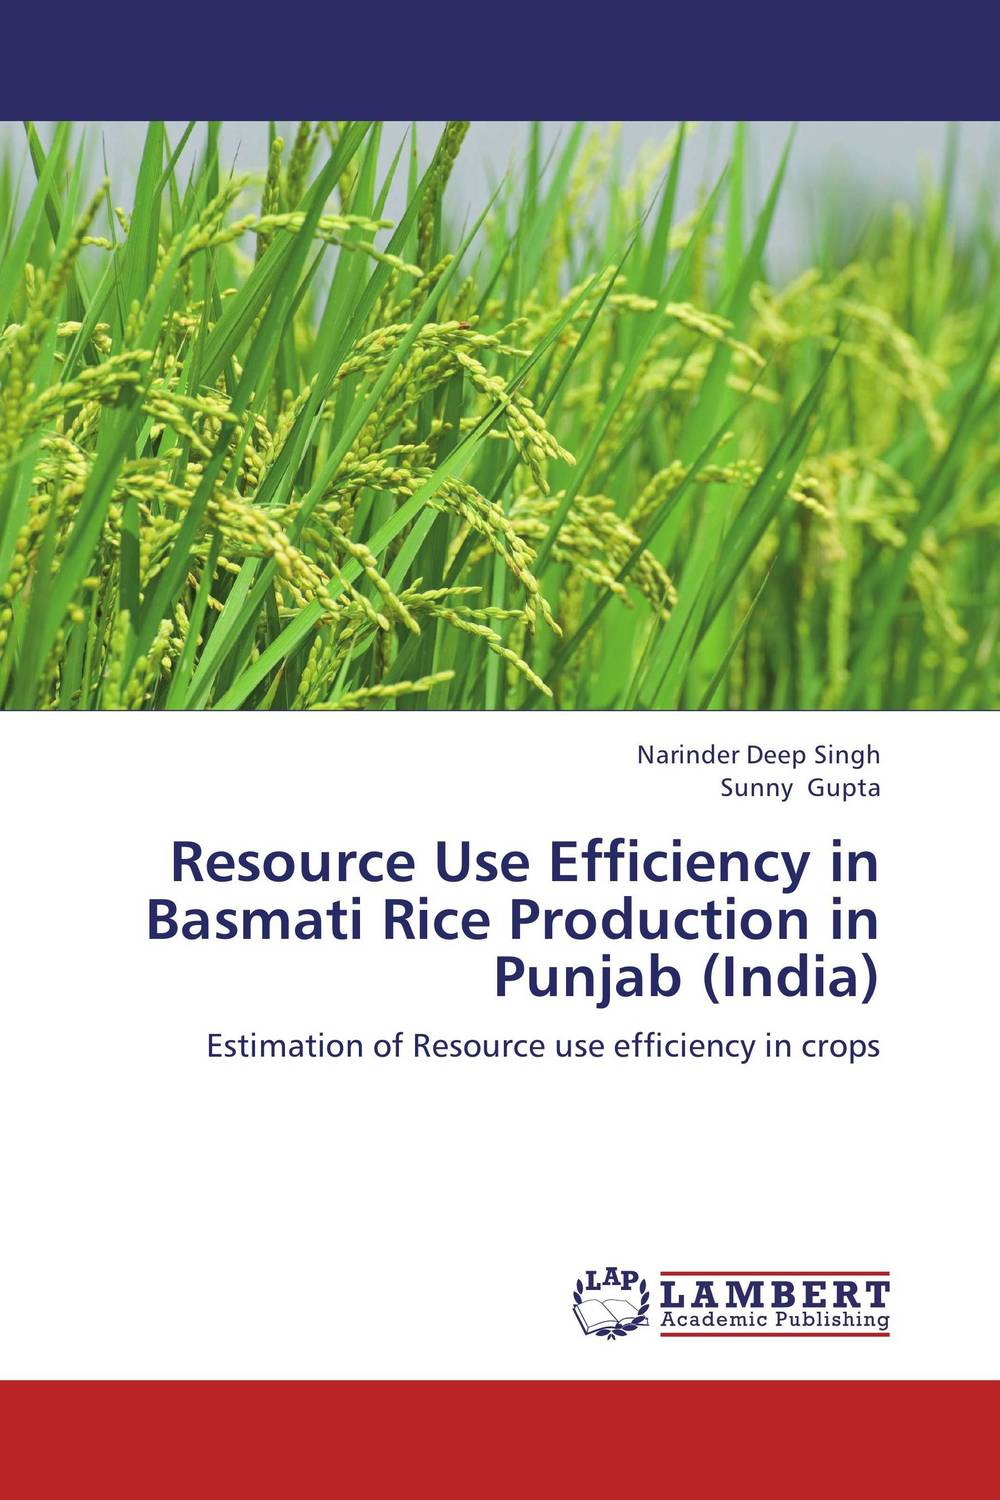 Resource Use Efficiency in Basmati Rice Production in Punjab (India) community resilience of village udekaran punjab india